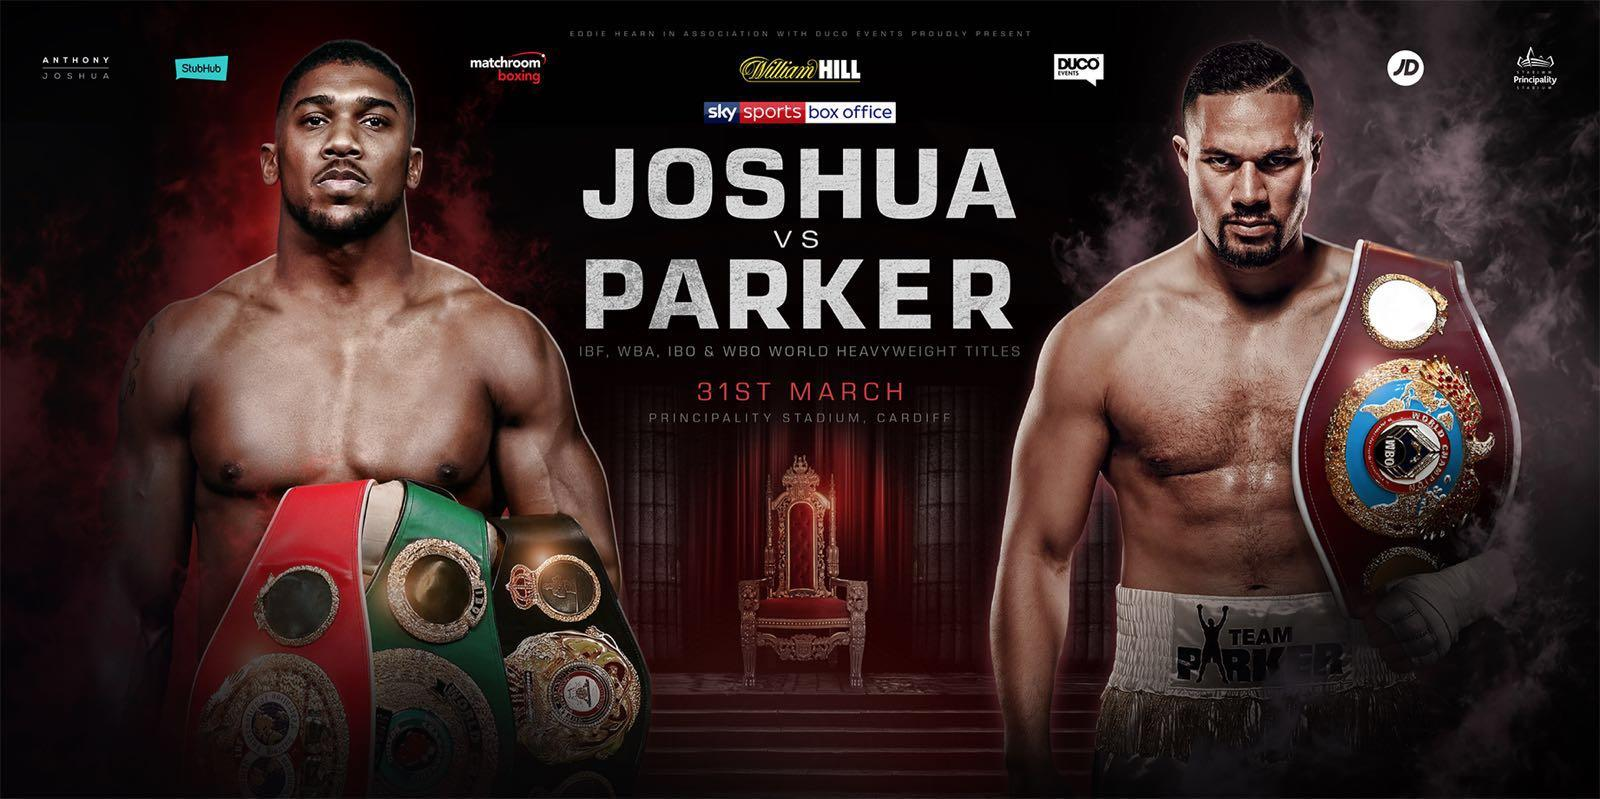 Participant co uk - Watch Joshua vs Parker Fight Live Free Streaming